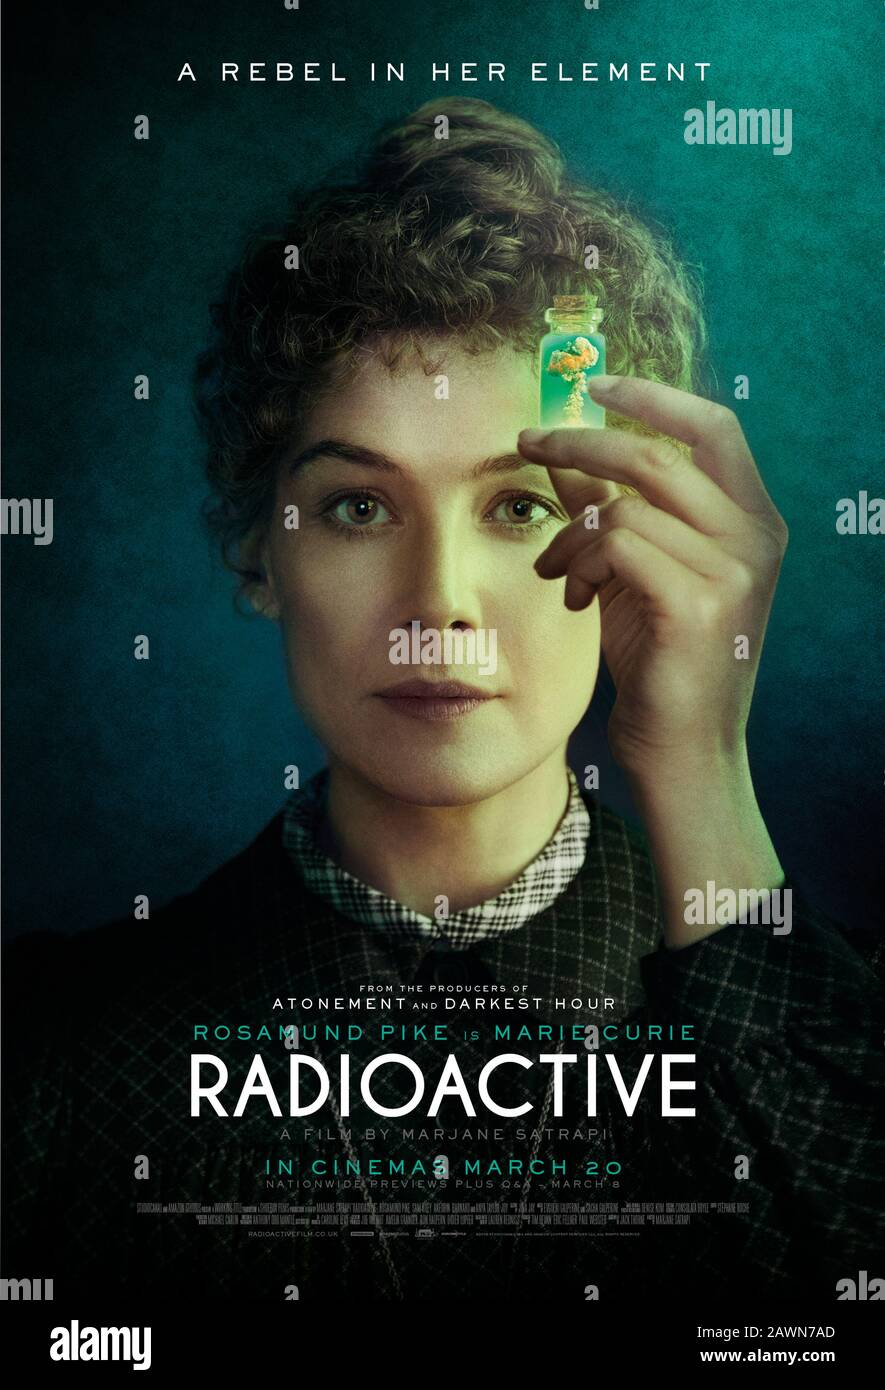 Radioactive (2019) directed by Marjane Satrapi and starring Rosamund Pike, Anya Taylor-Joy and Aneurin Barnard. The story of Marie Curie the Polish scientist who's groundbreaking research on radioactivity made her the first woman to win a Novel Prize. Stock Photo